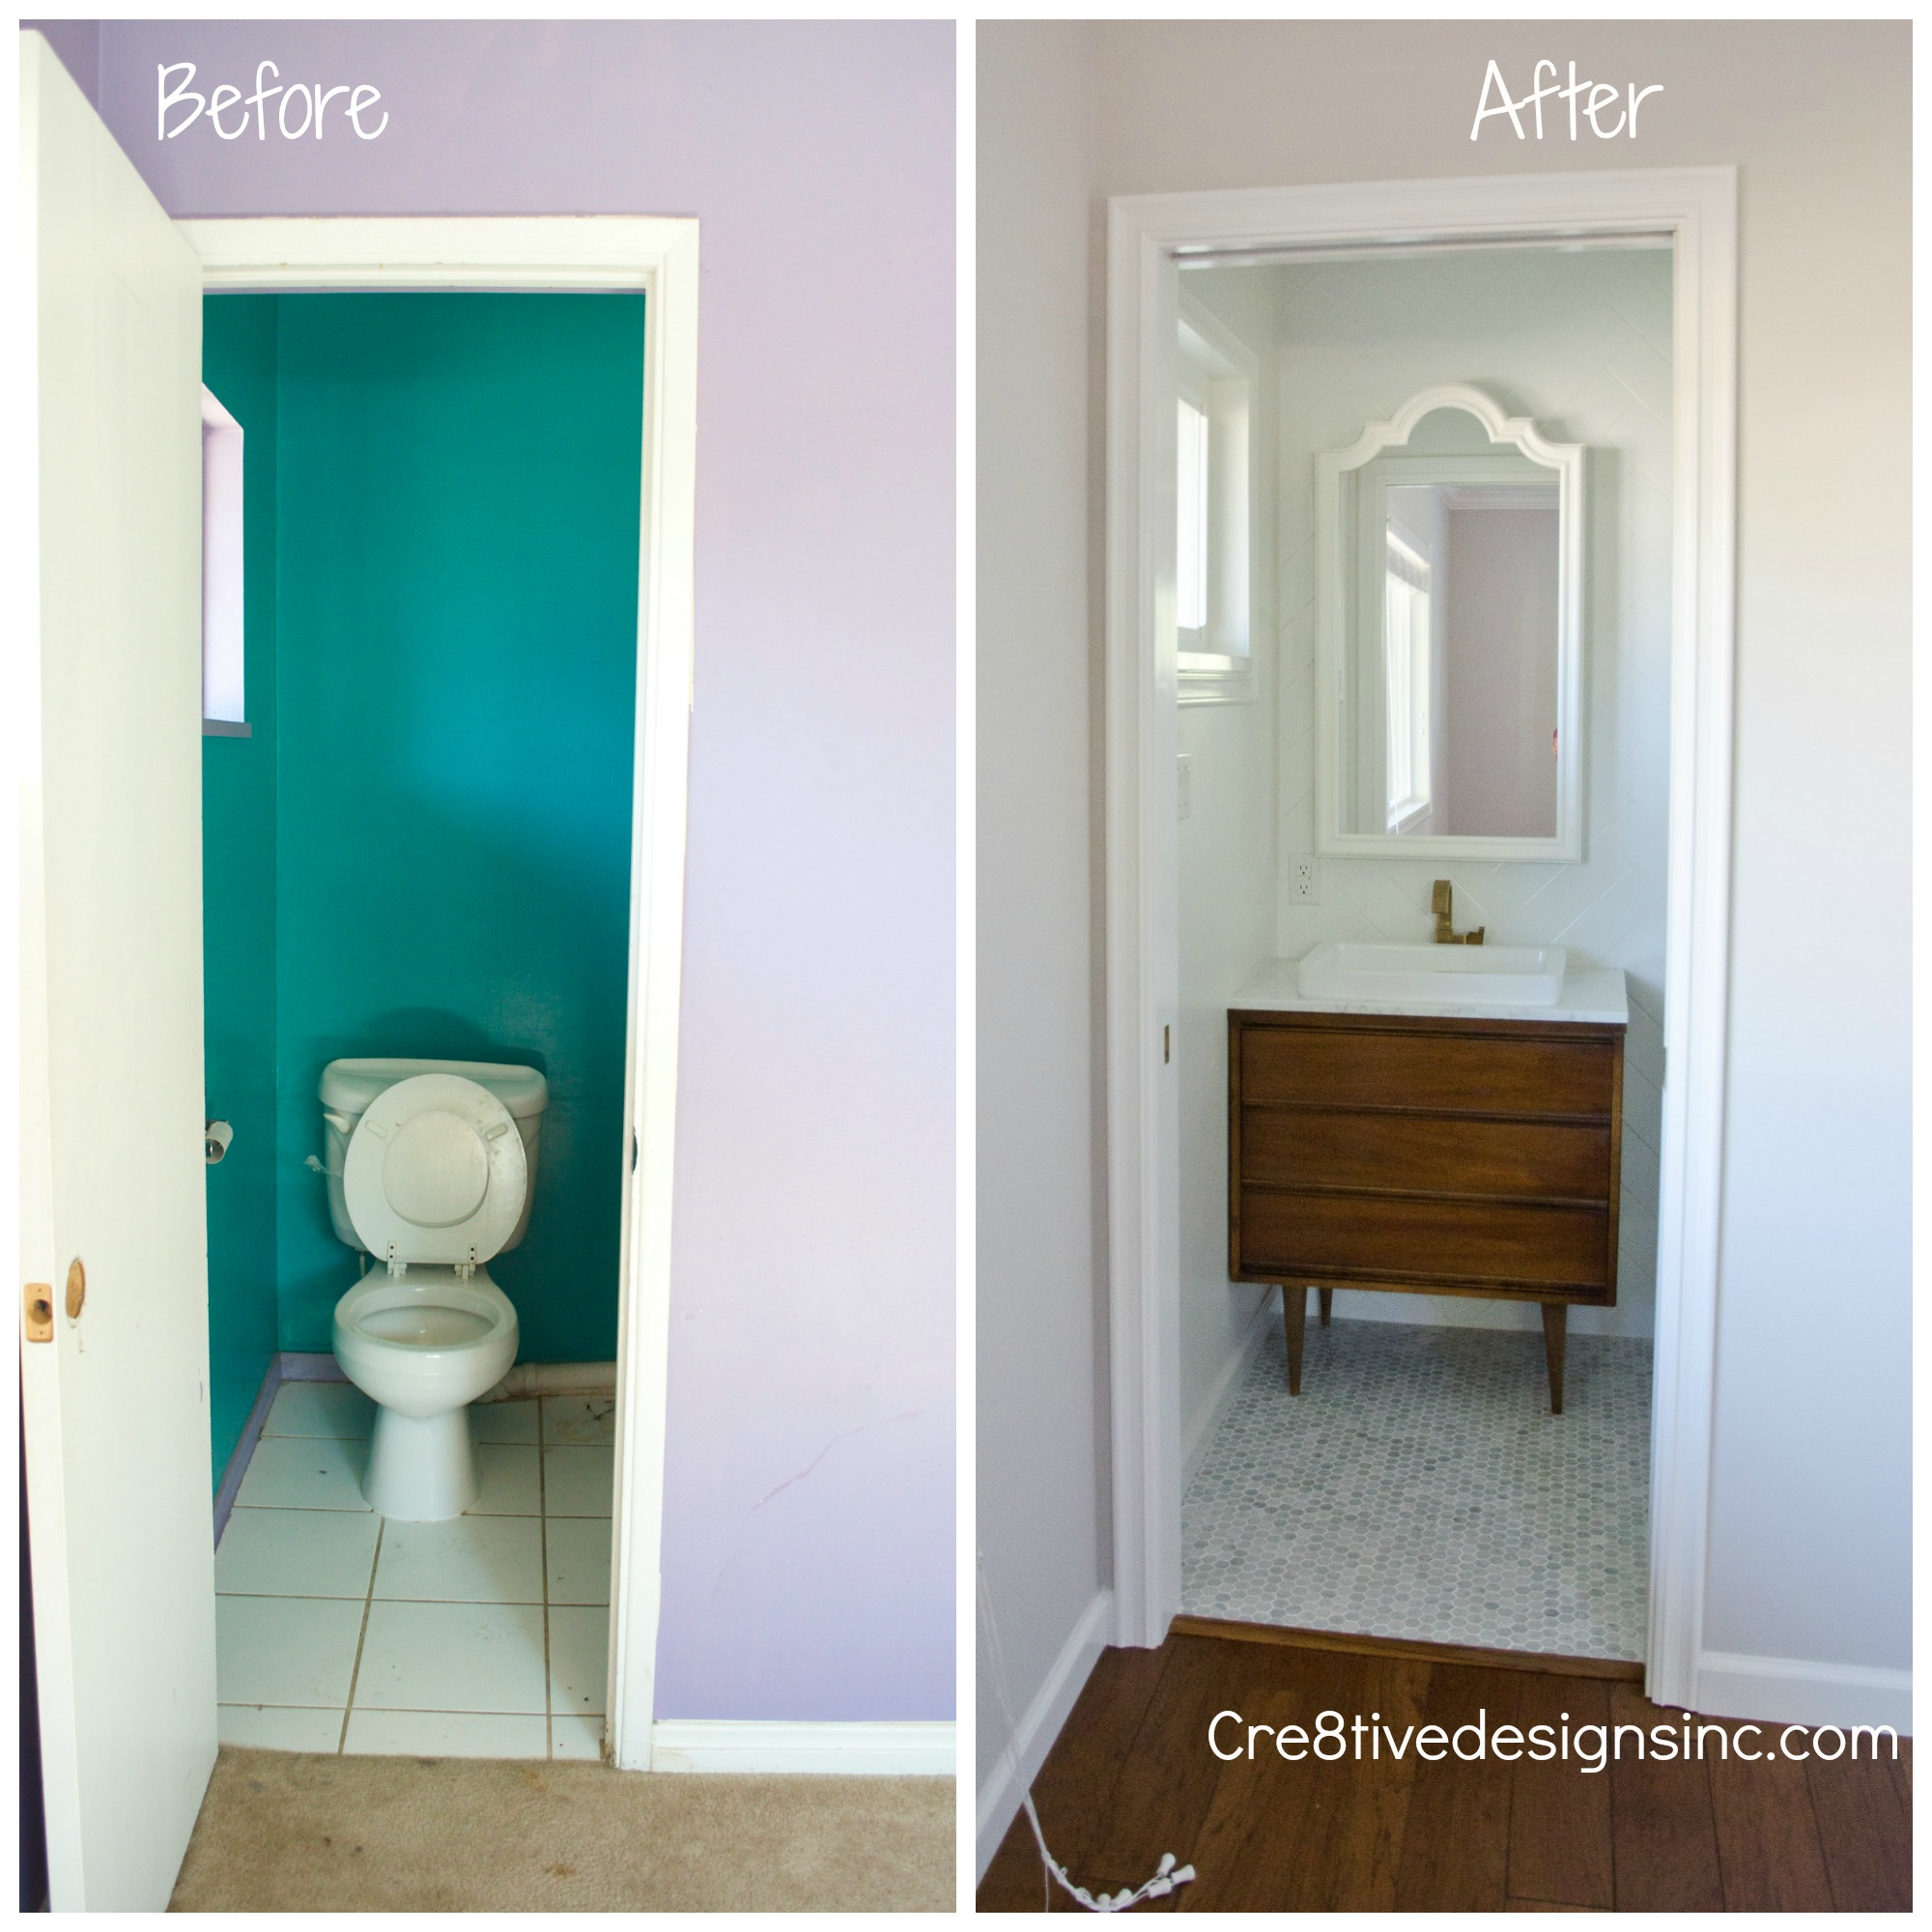 Inspirational Before and after tiny bathroom